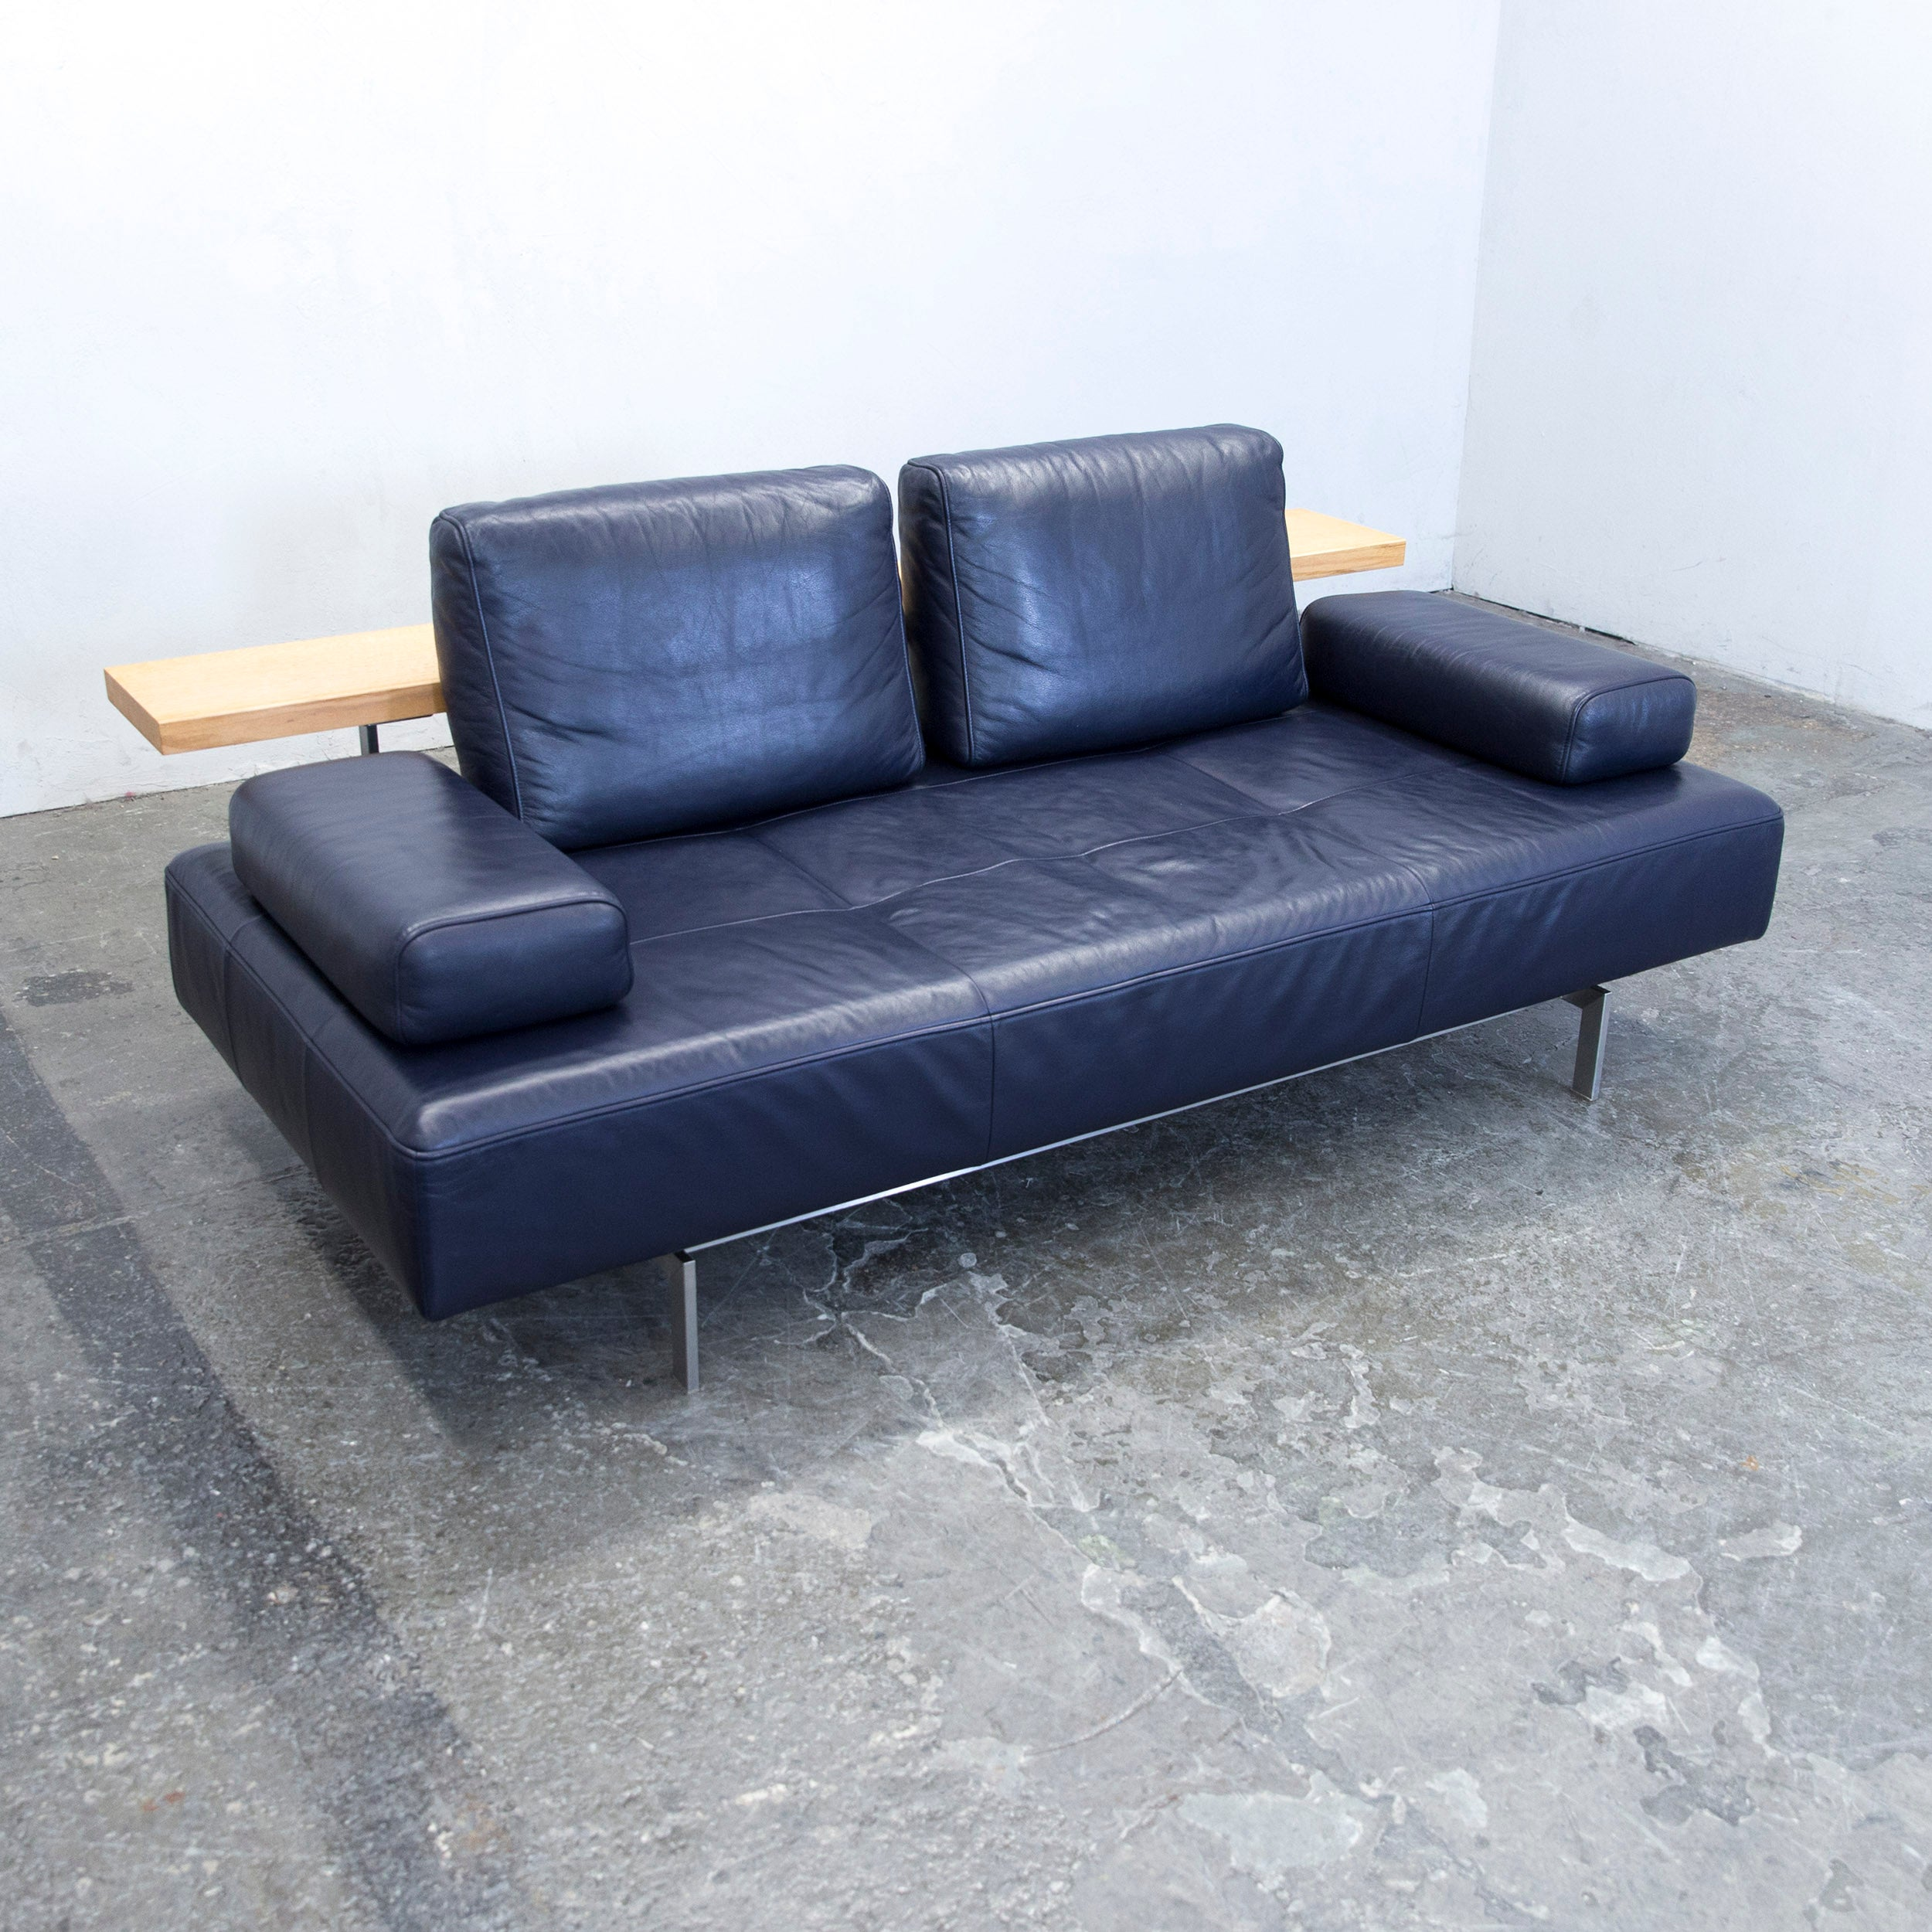 Rolf Benz Sofa Ecksofa Sofa Rolf Benz Fabulous Rb With Sofa Rolf Benz Affordable Rolf